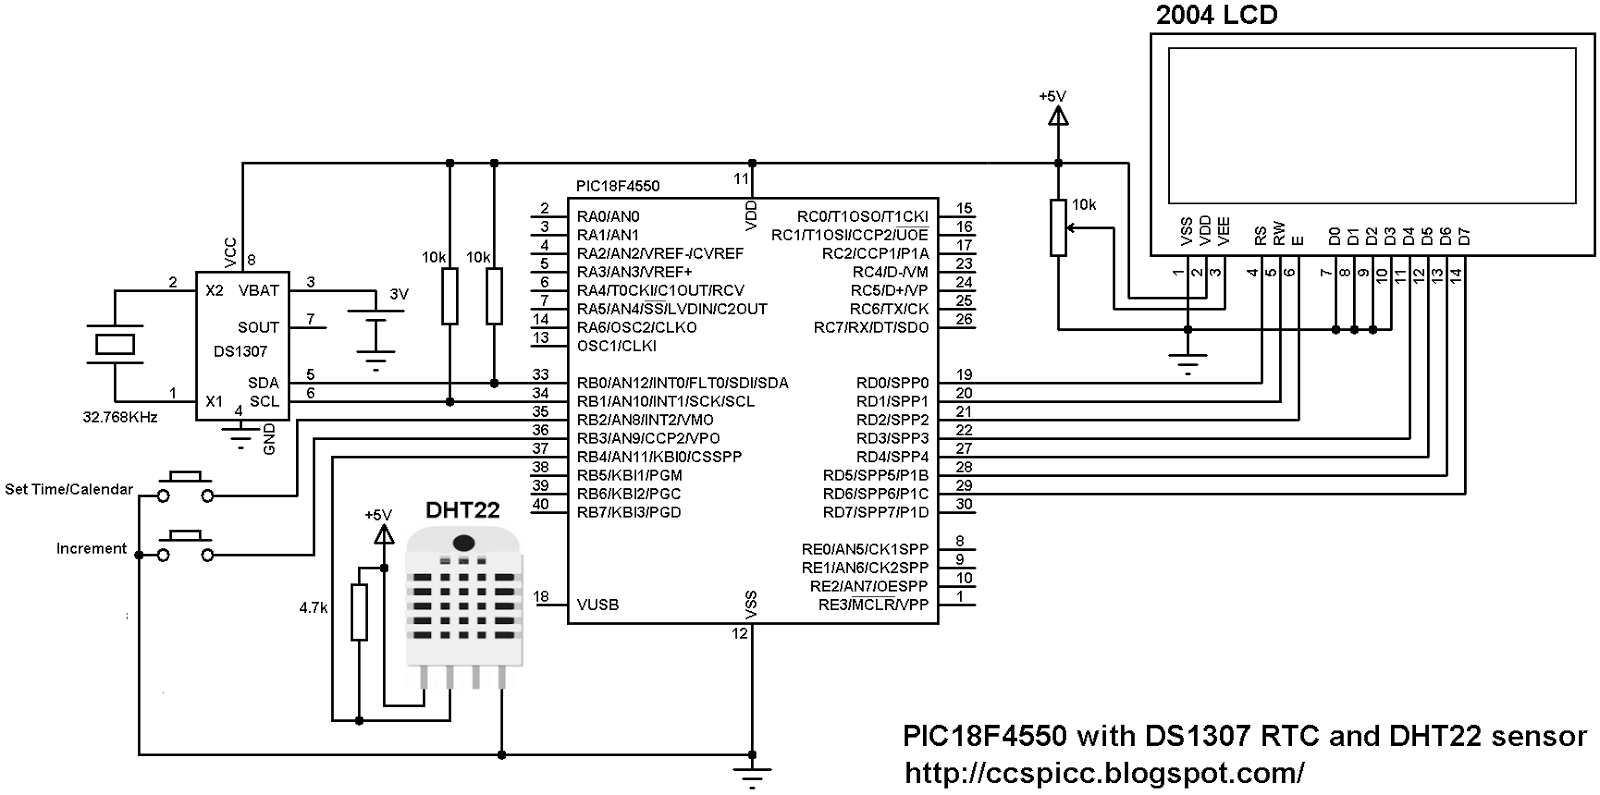 pic18f4550   20x4 lcd   ds1307 rtc   dht22 relative humidity and temperature sensor